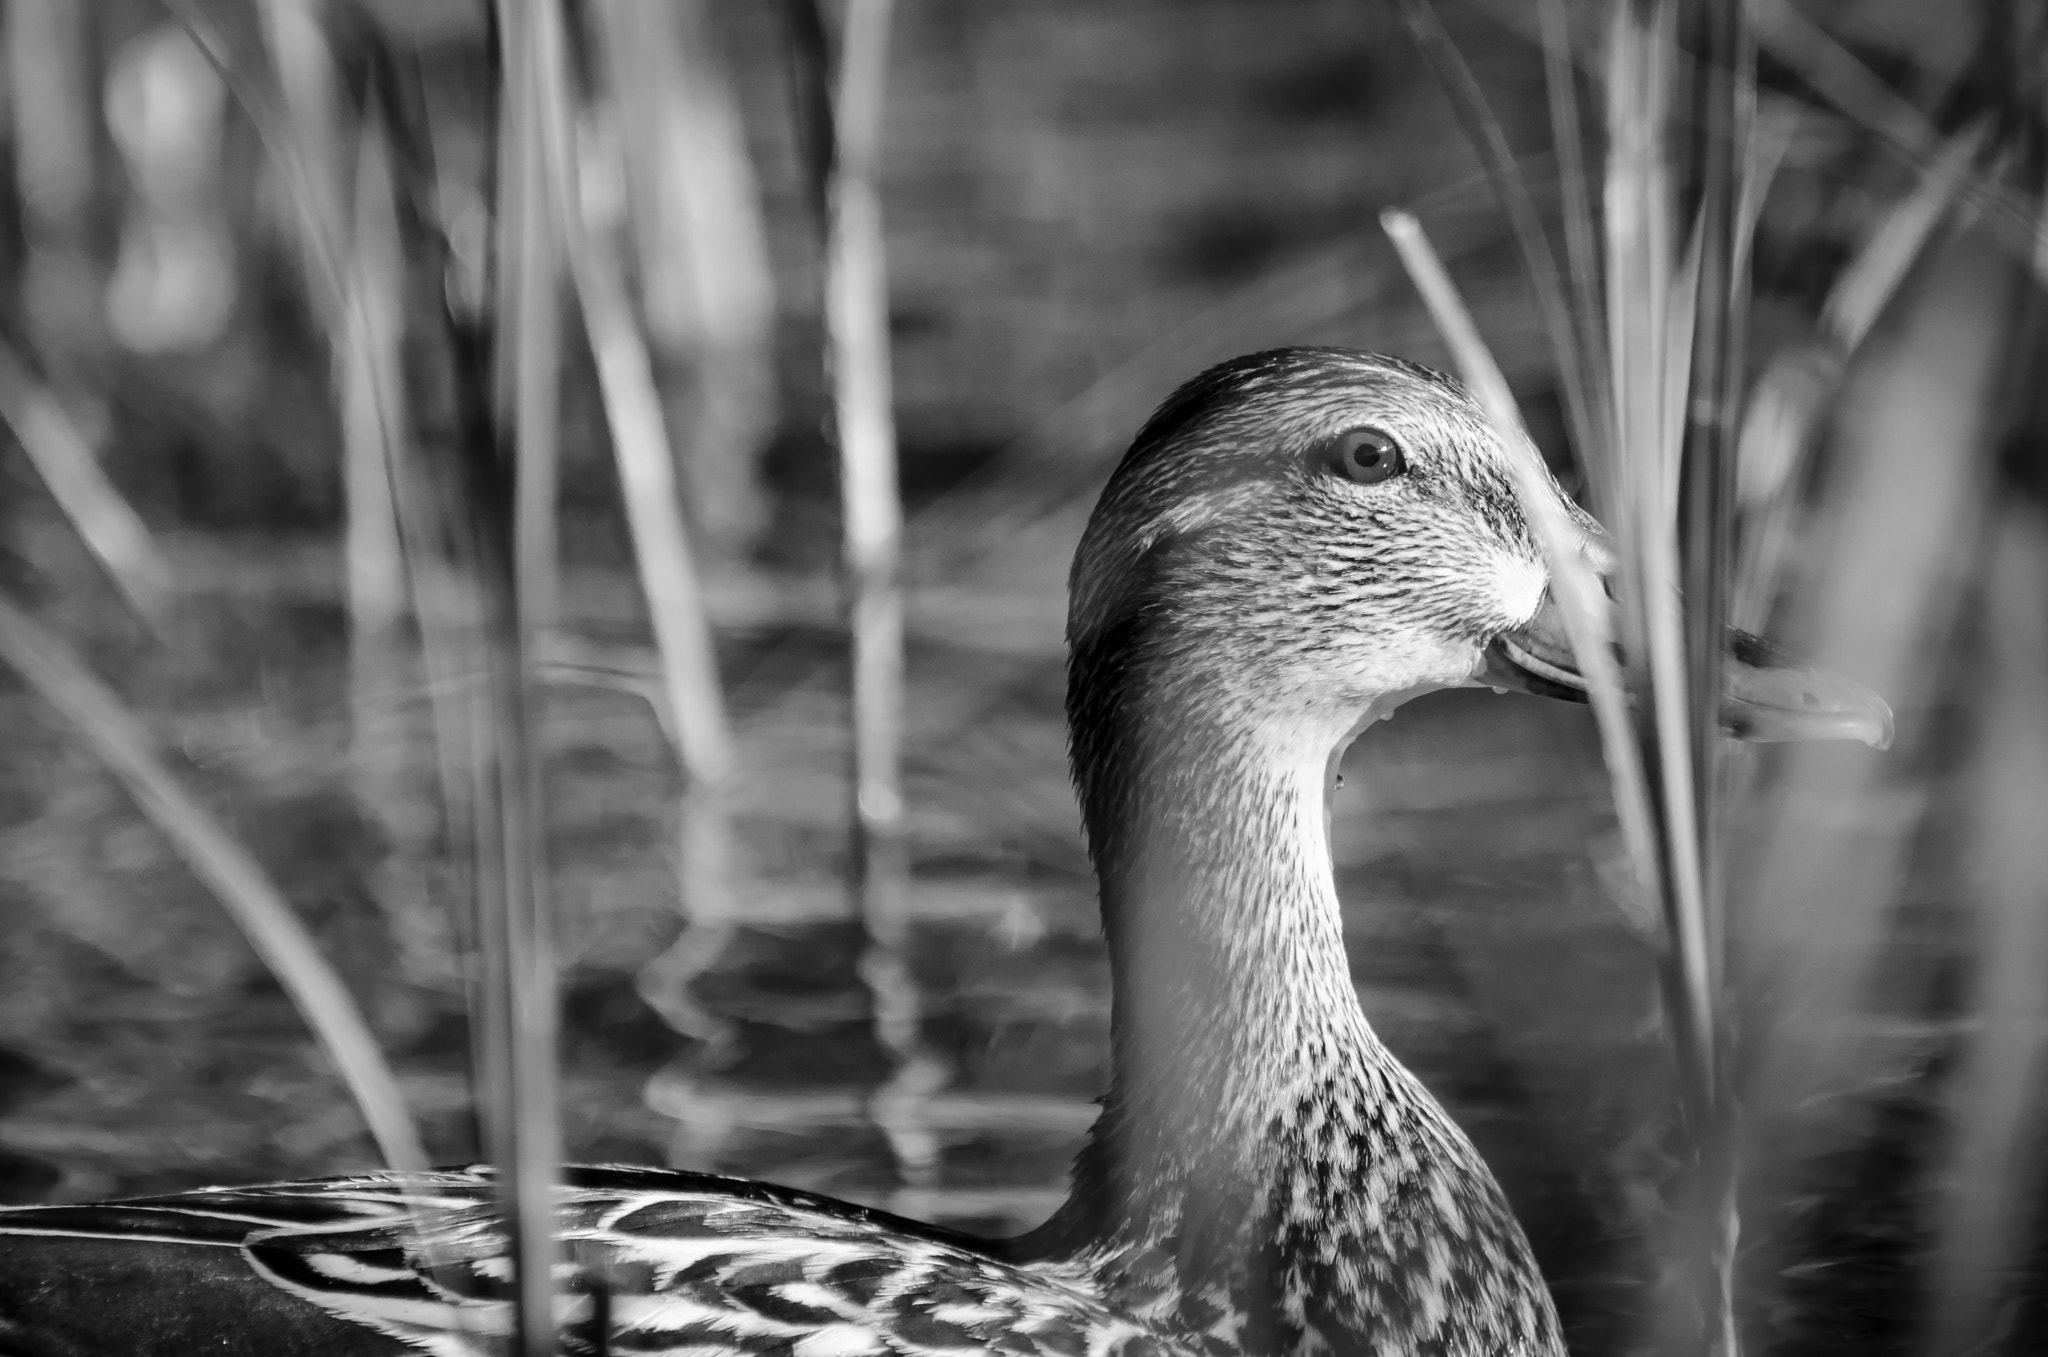 Photograph In the Reeds by Laurens Kaldeway on 500px